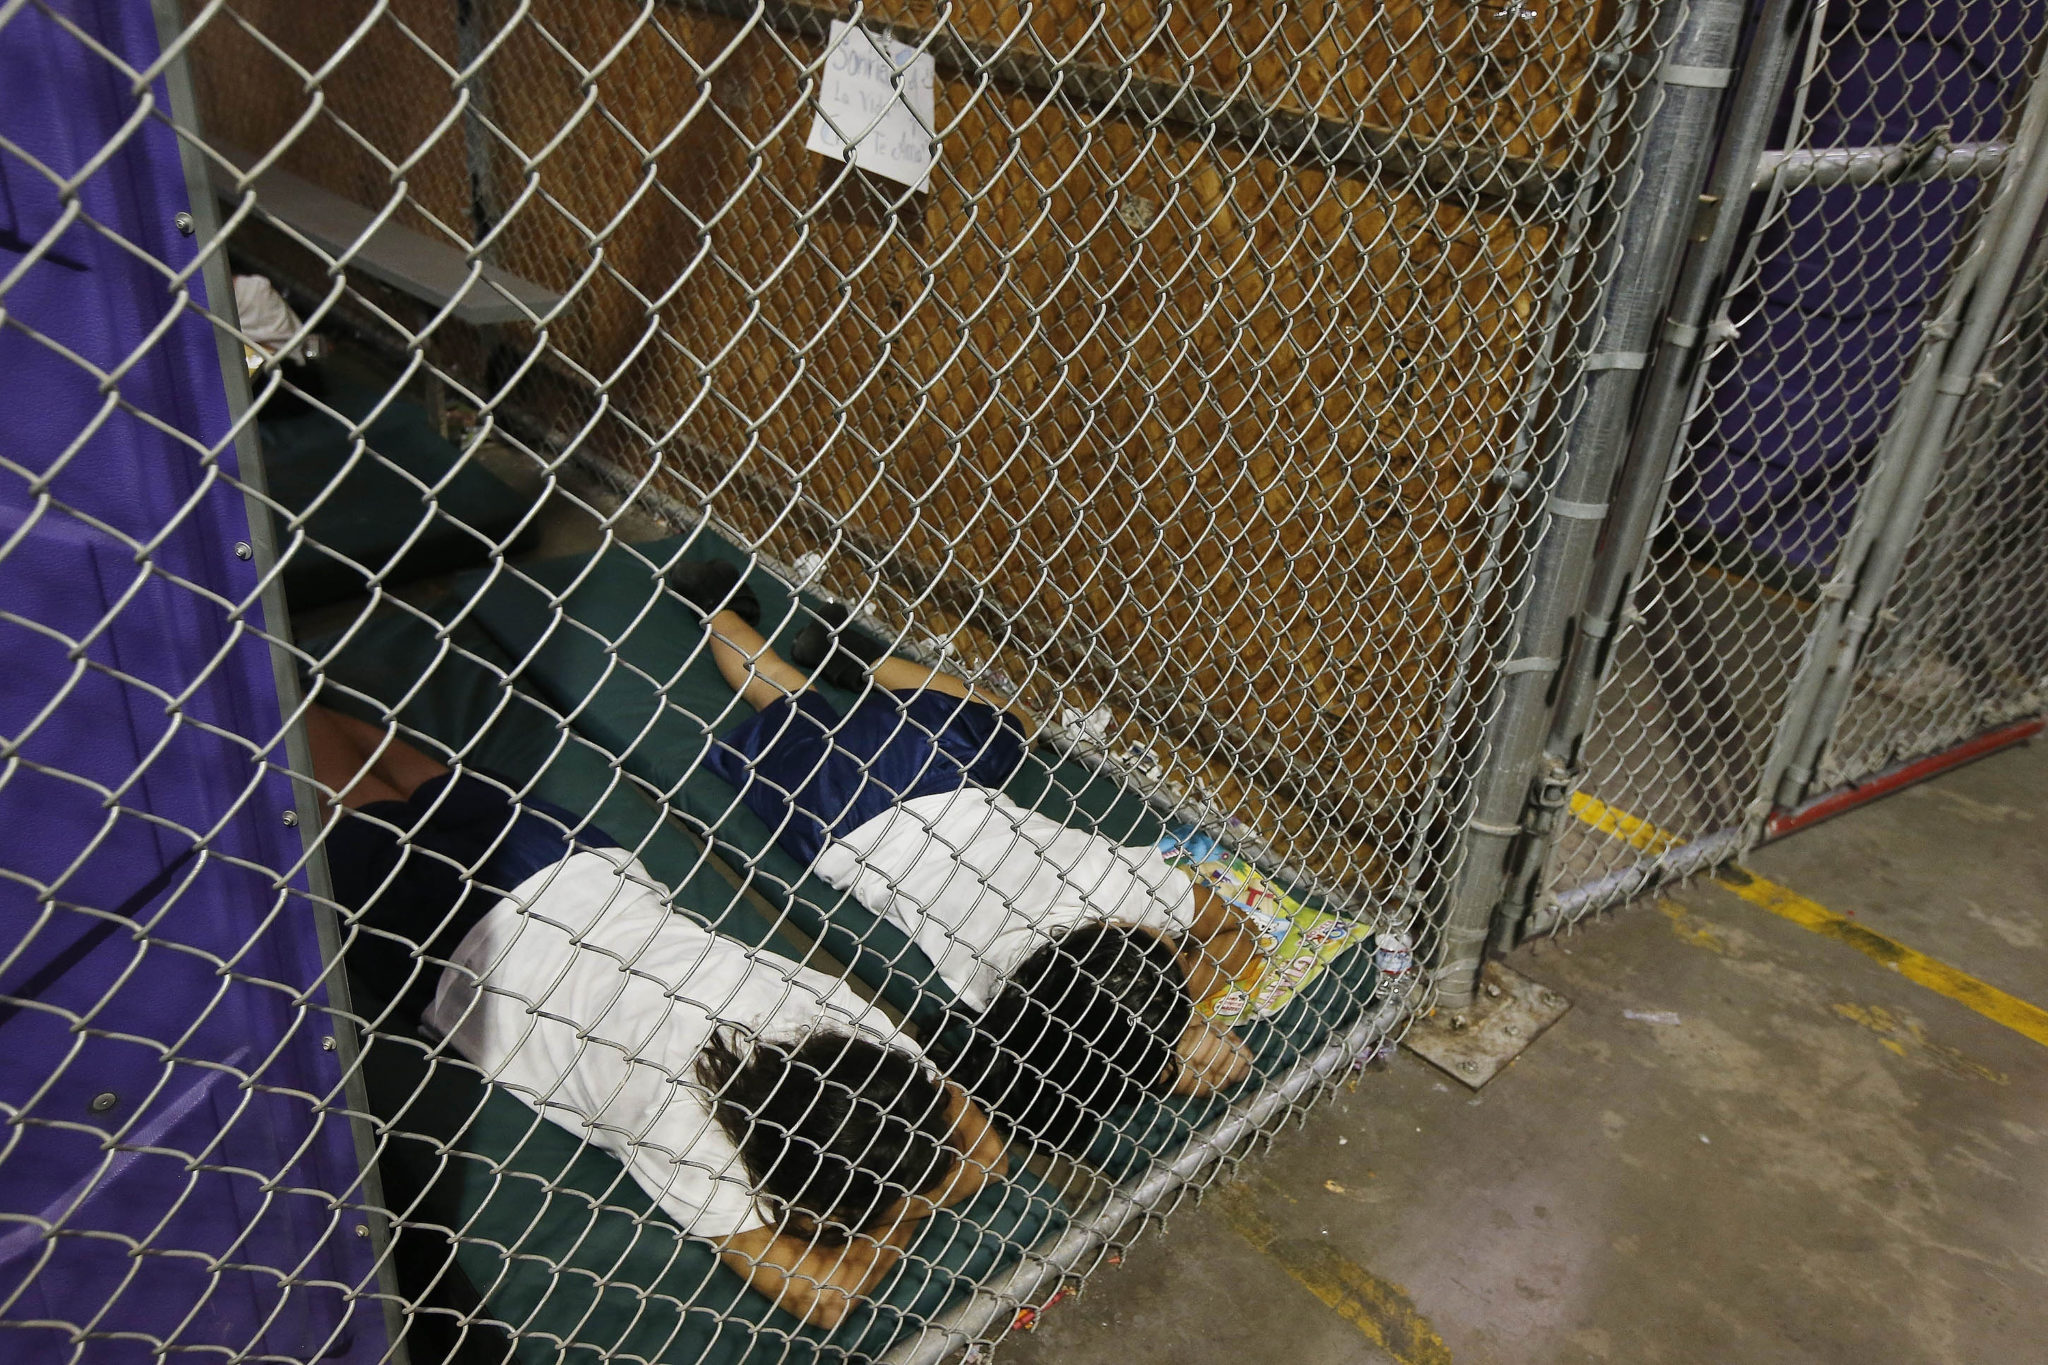 Two girls sleep in a holding cell at a Border Patrol facility in Nogales, Arizona.